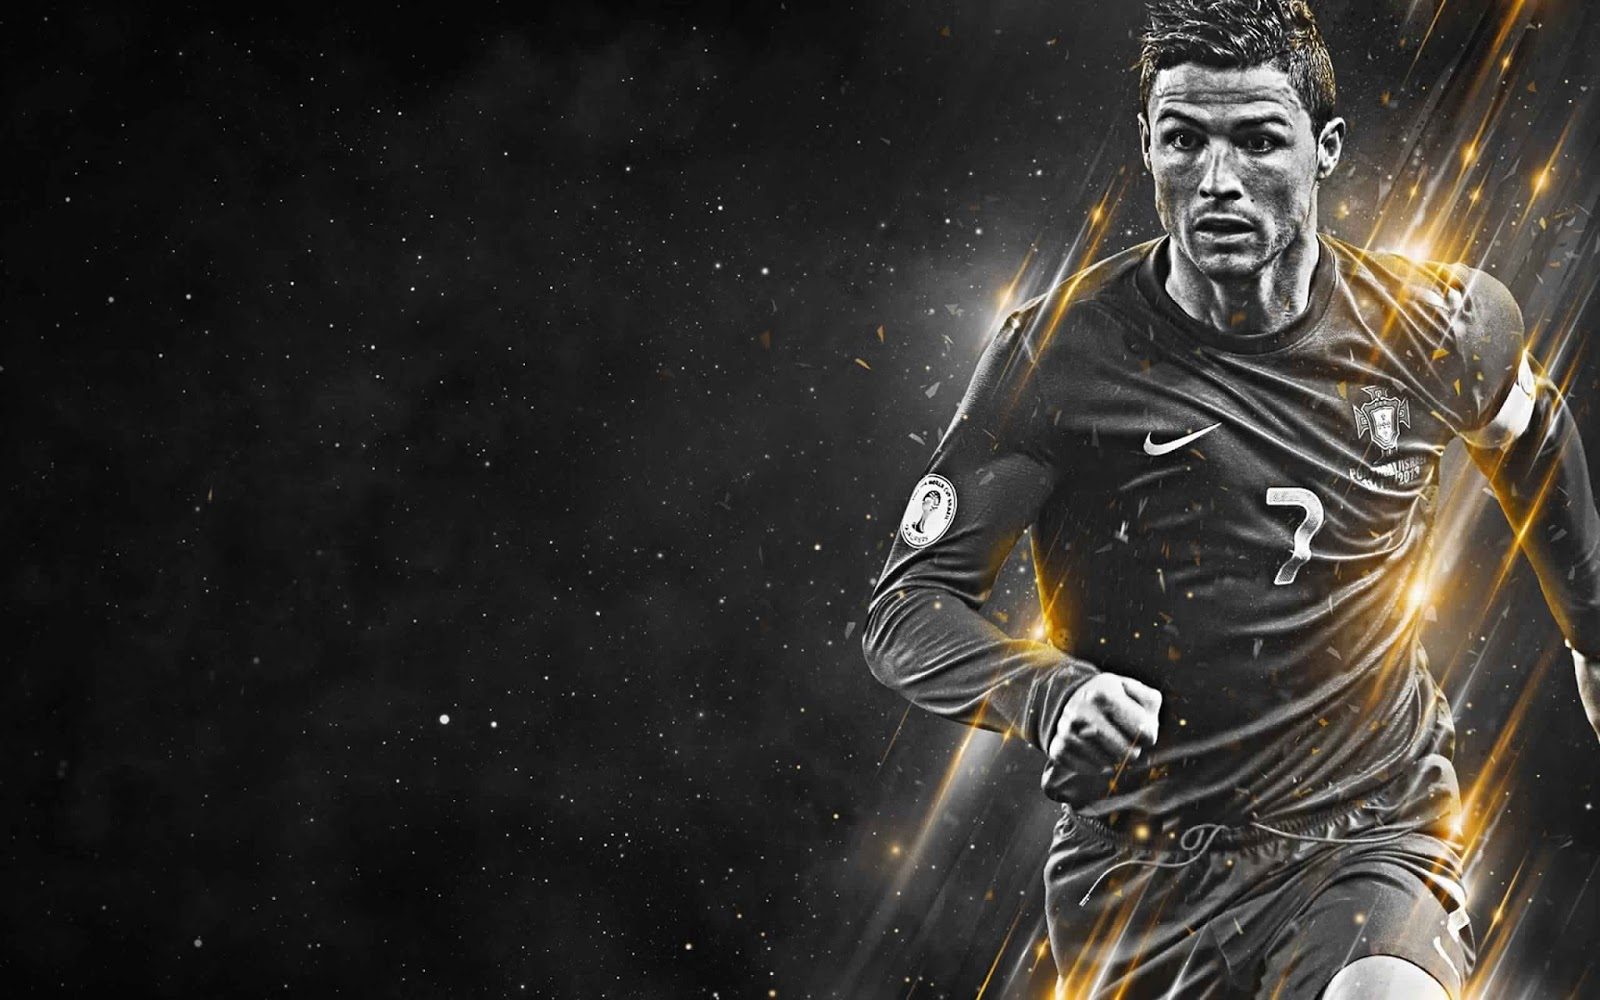 Cristiano Ronaldo Wallpapers HD Real Madrid 2015 2016 Calma Calma 1600x1000